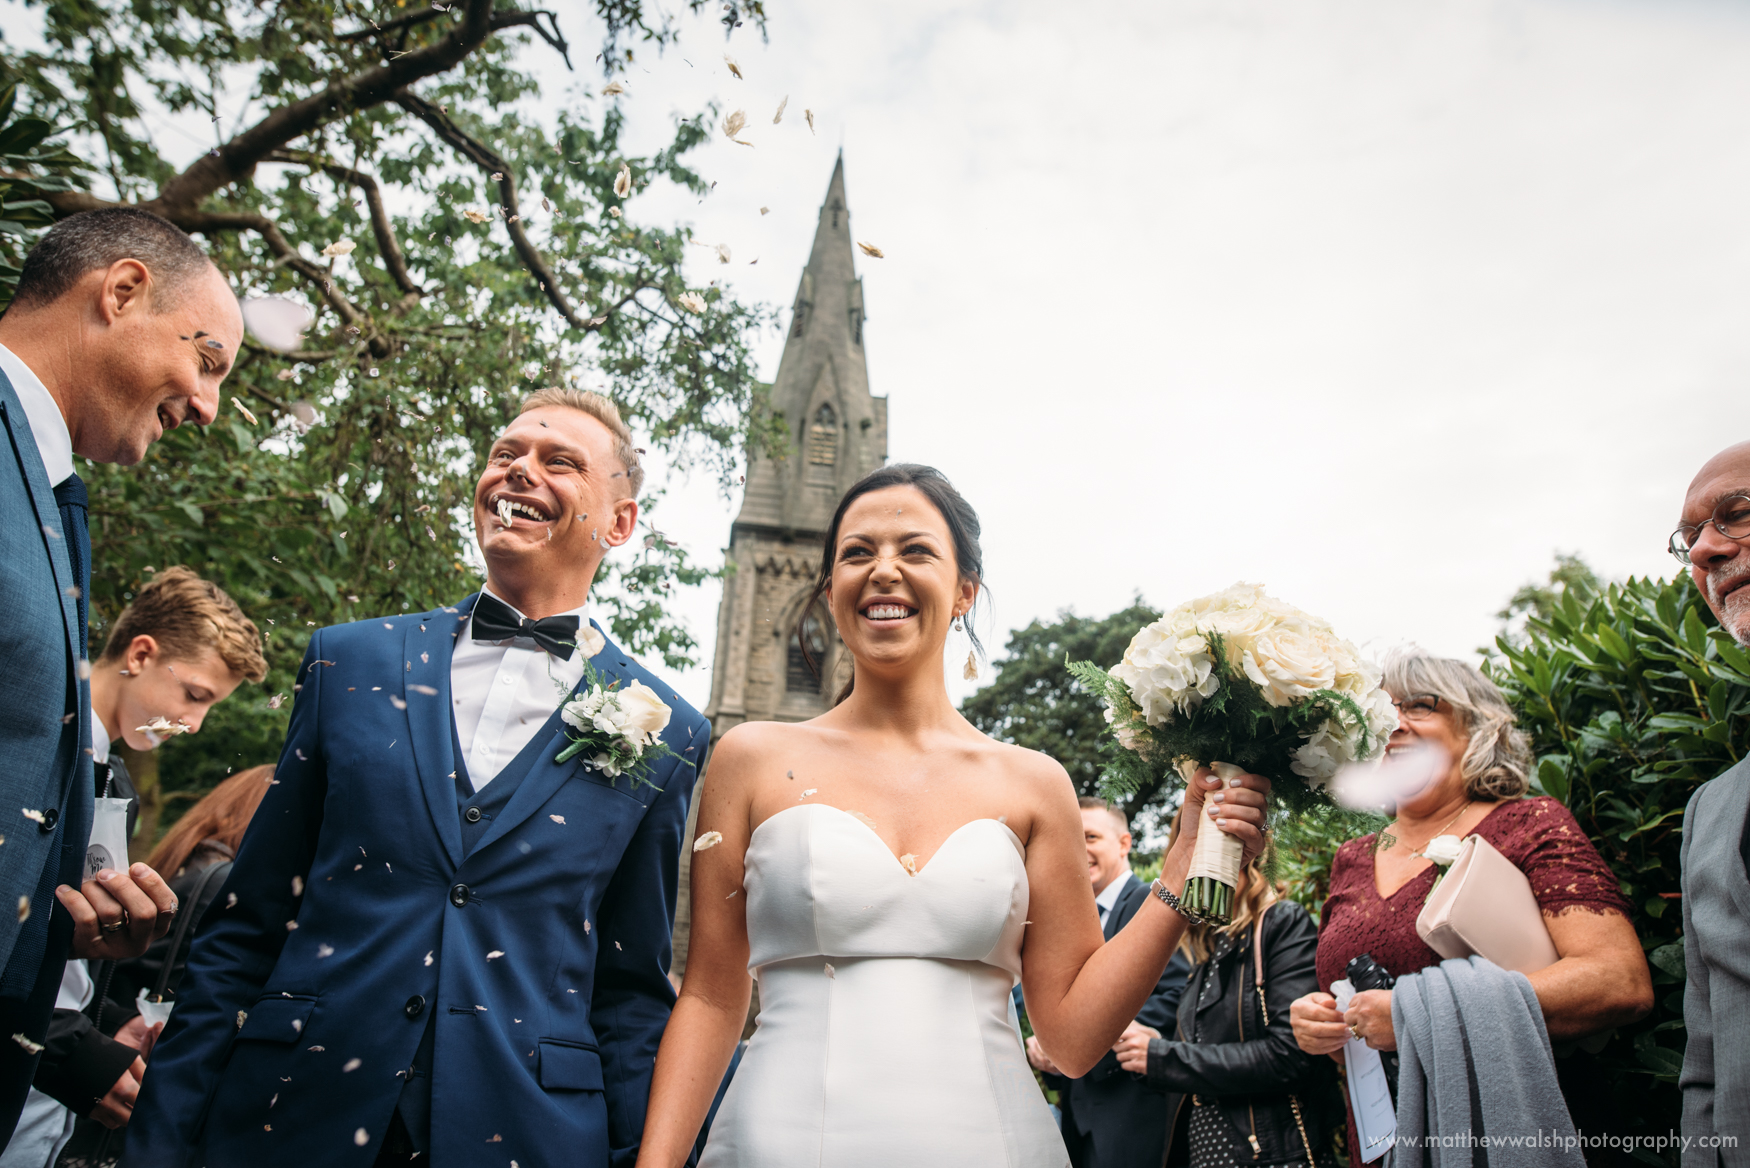 Recording the moment the newlyweds walk down an isle of confetti on leaving the church